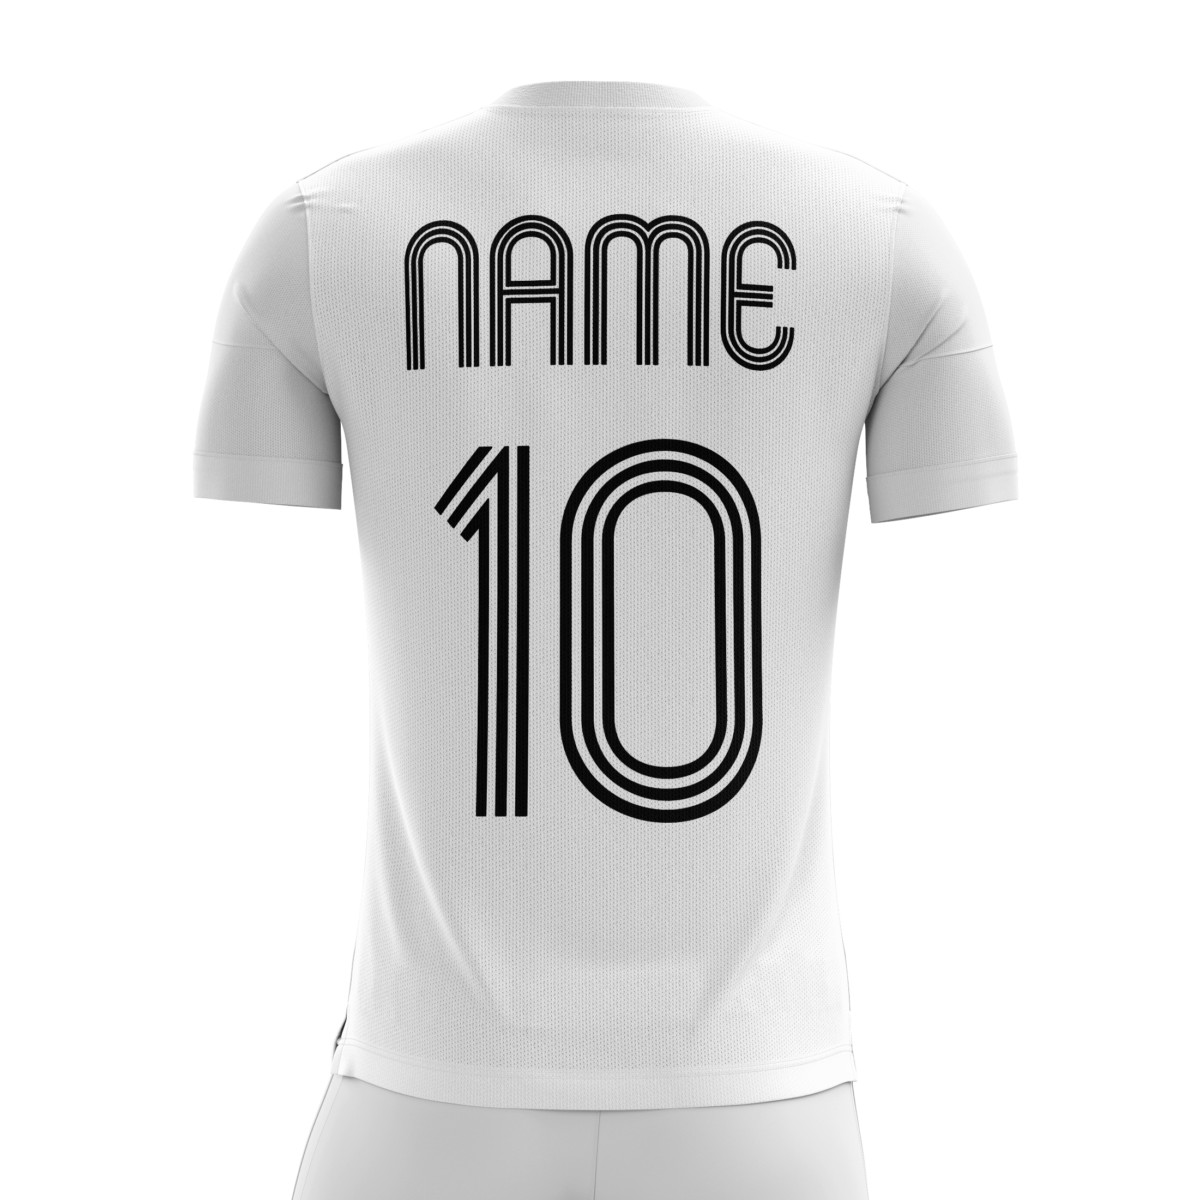 dd9462d8156 KTRX-Multinational Half and Half Jersey.Select the countries you ...